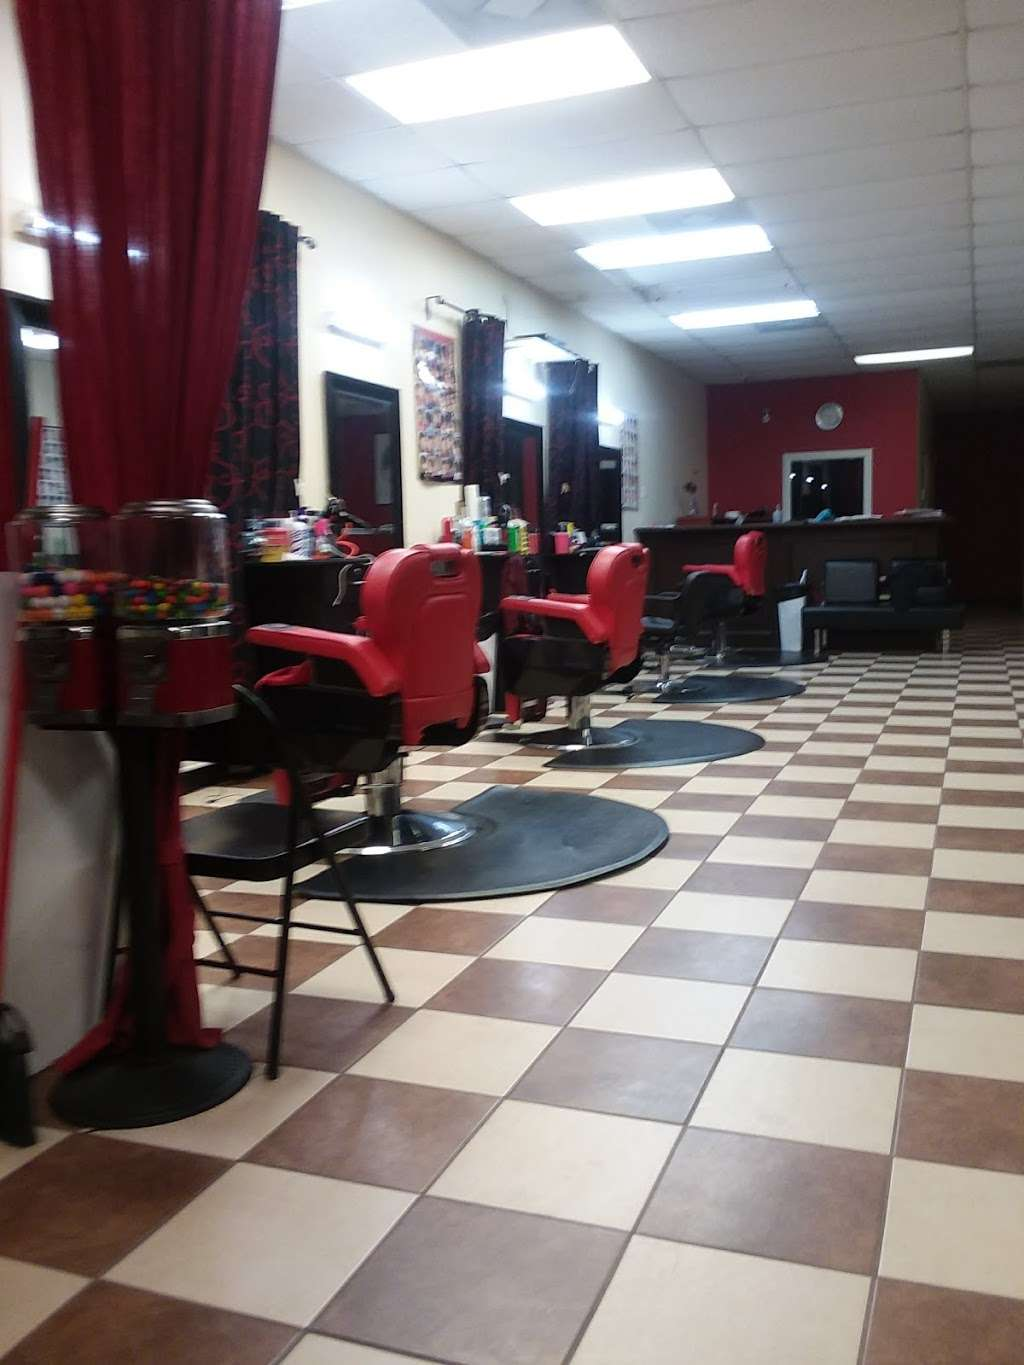 new style salon and barbershop - hair care  | Photo 2 of 10 | Address: 917 Greens Rd, Houston, TX 77060, USA | Phone: (281) 873-2121